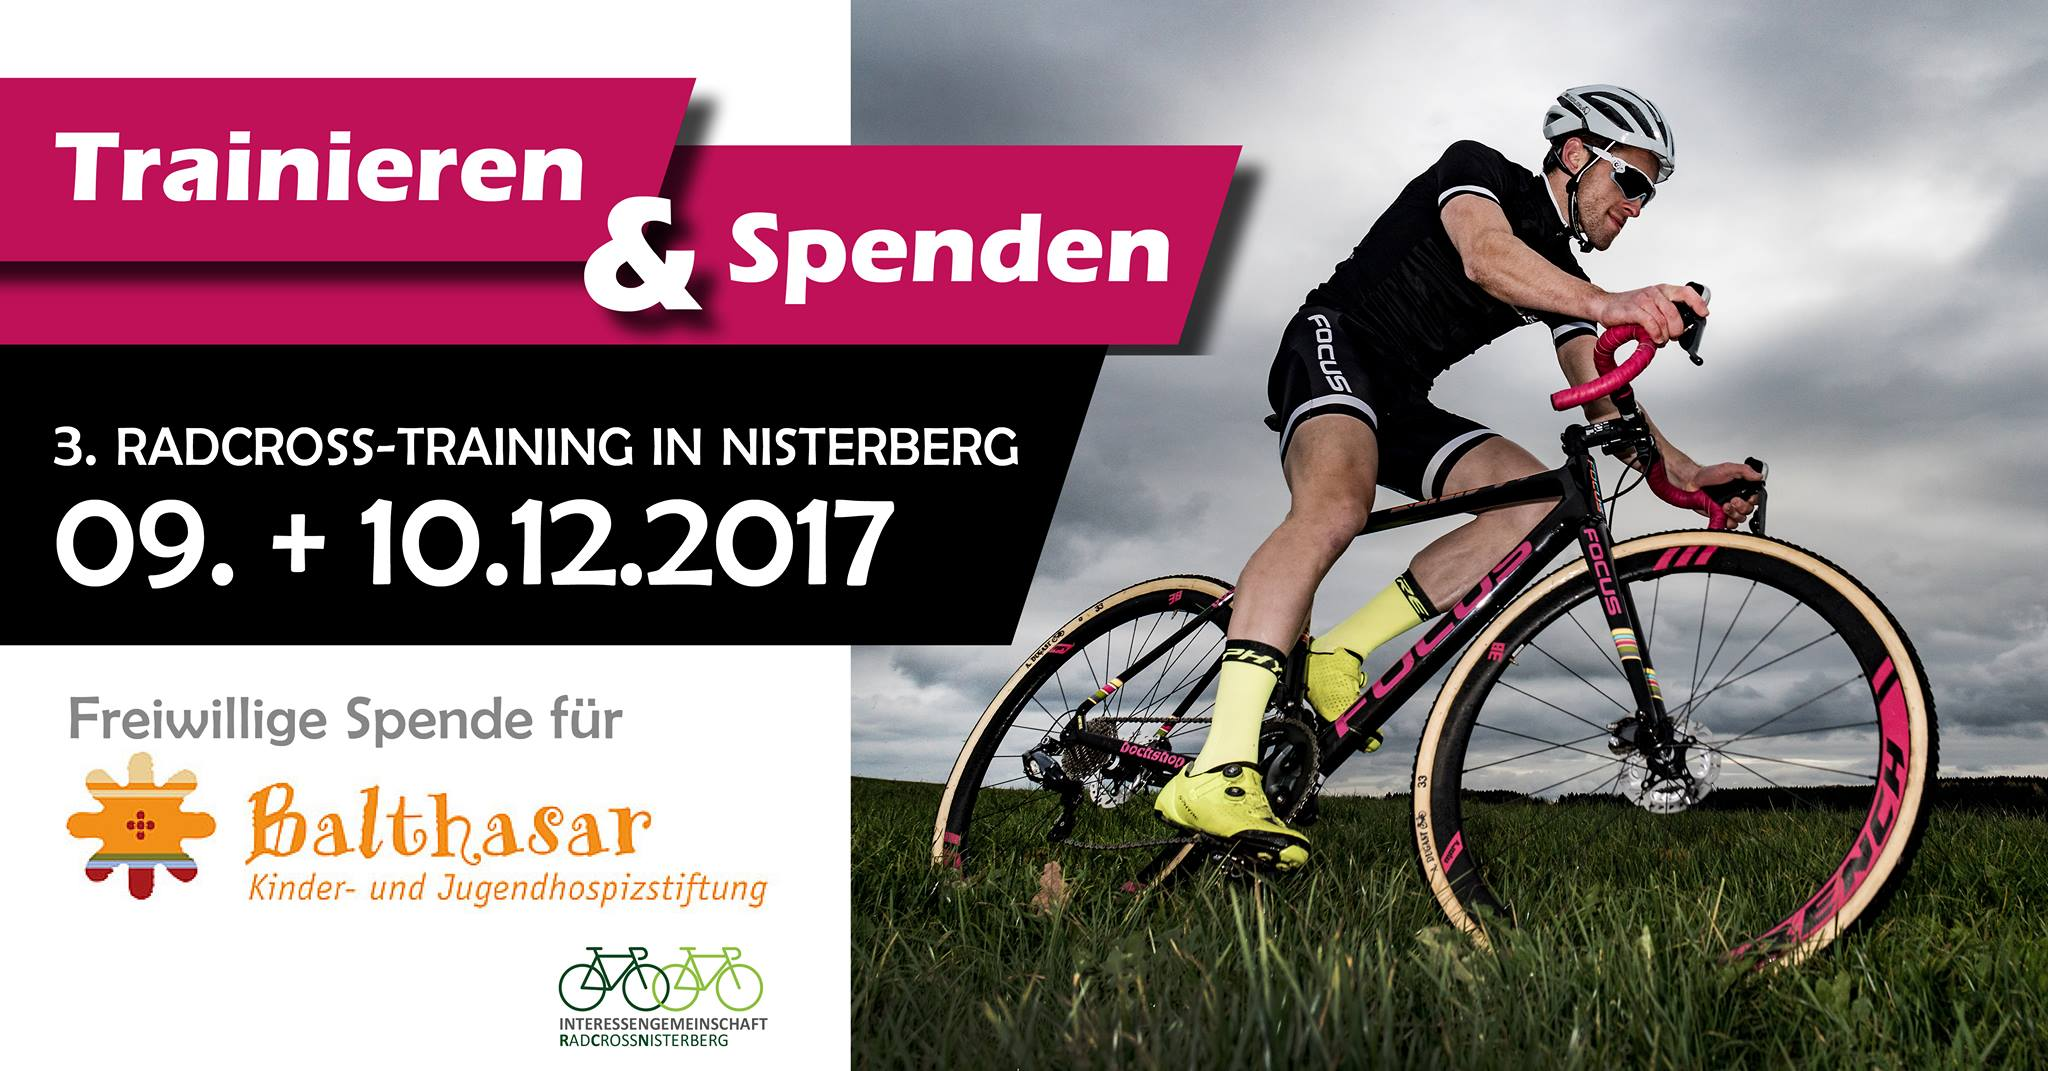 3. Radcross Nisterberg am 10.12.2017